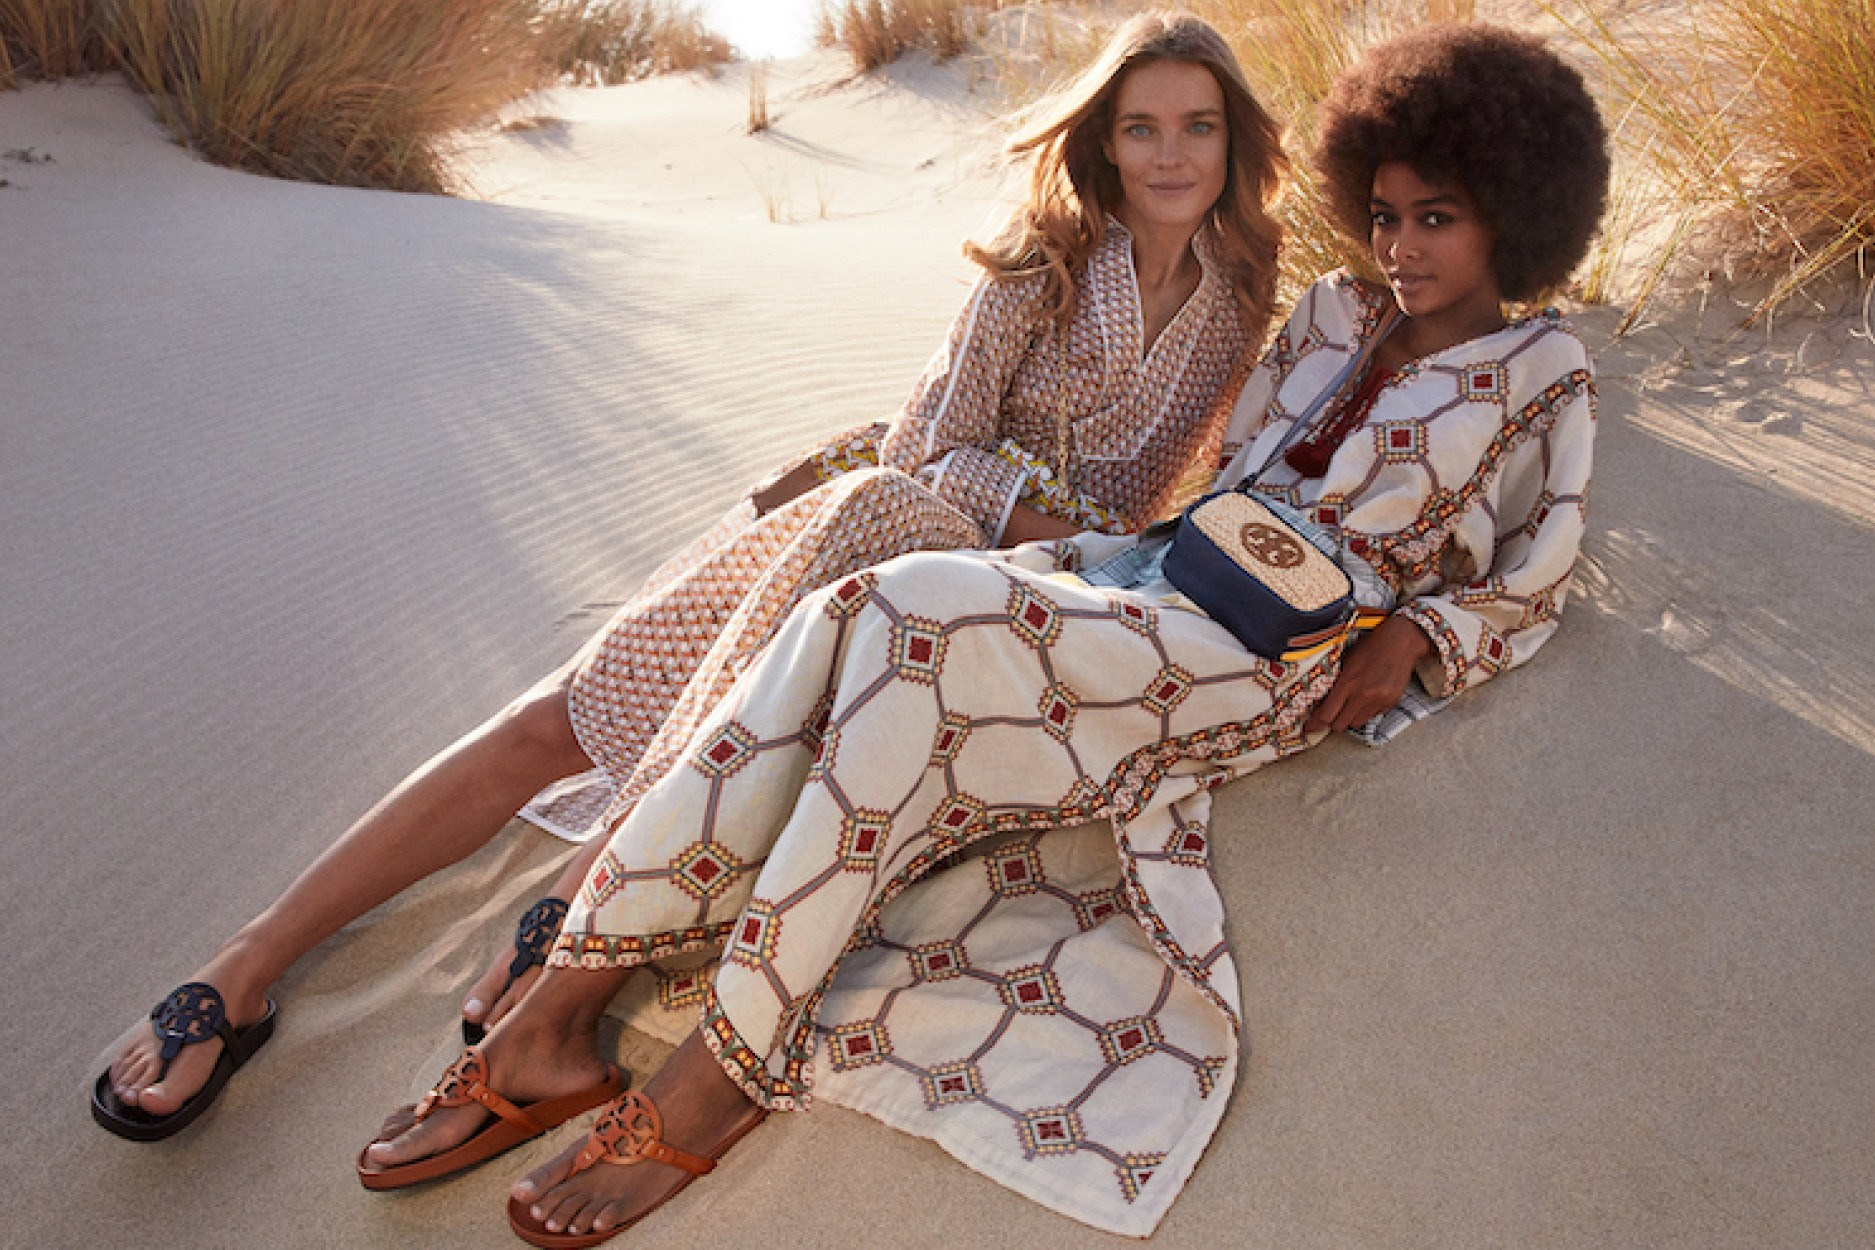 New Product Launch at Tory Burch